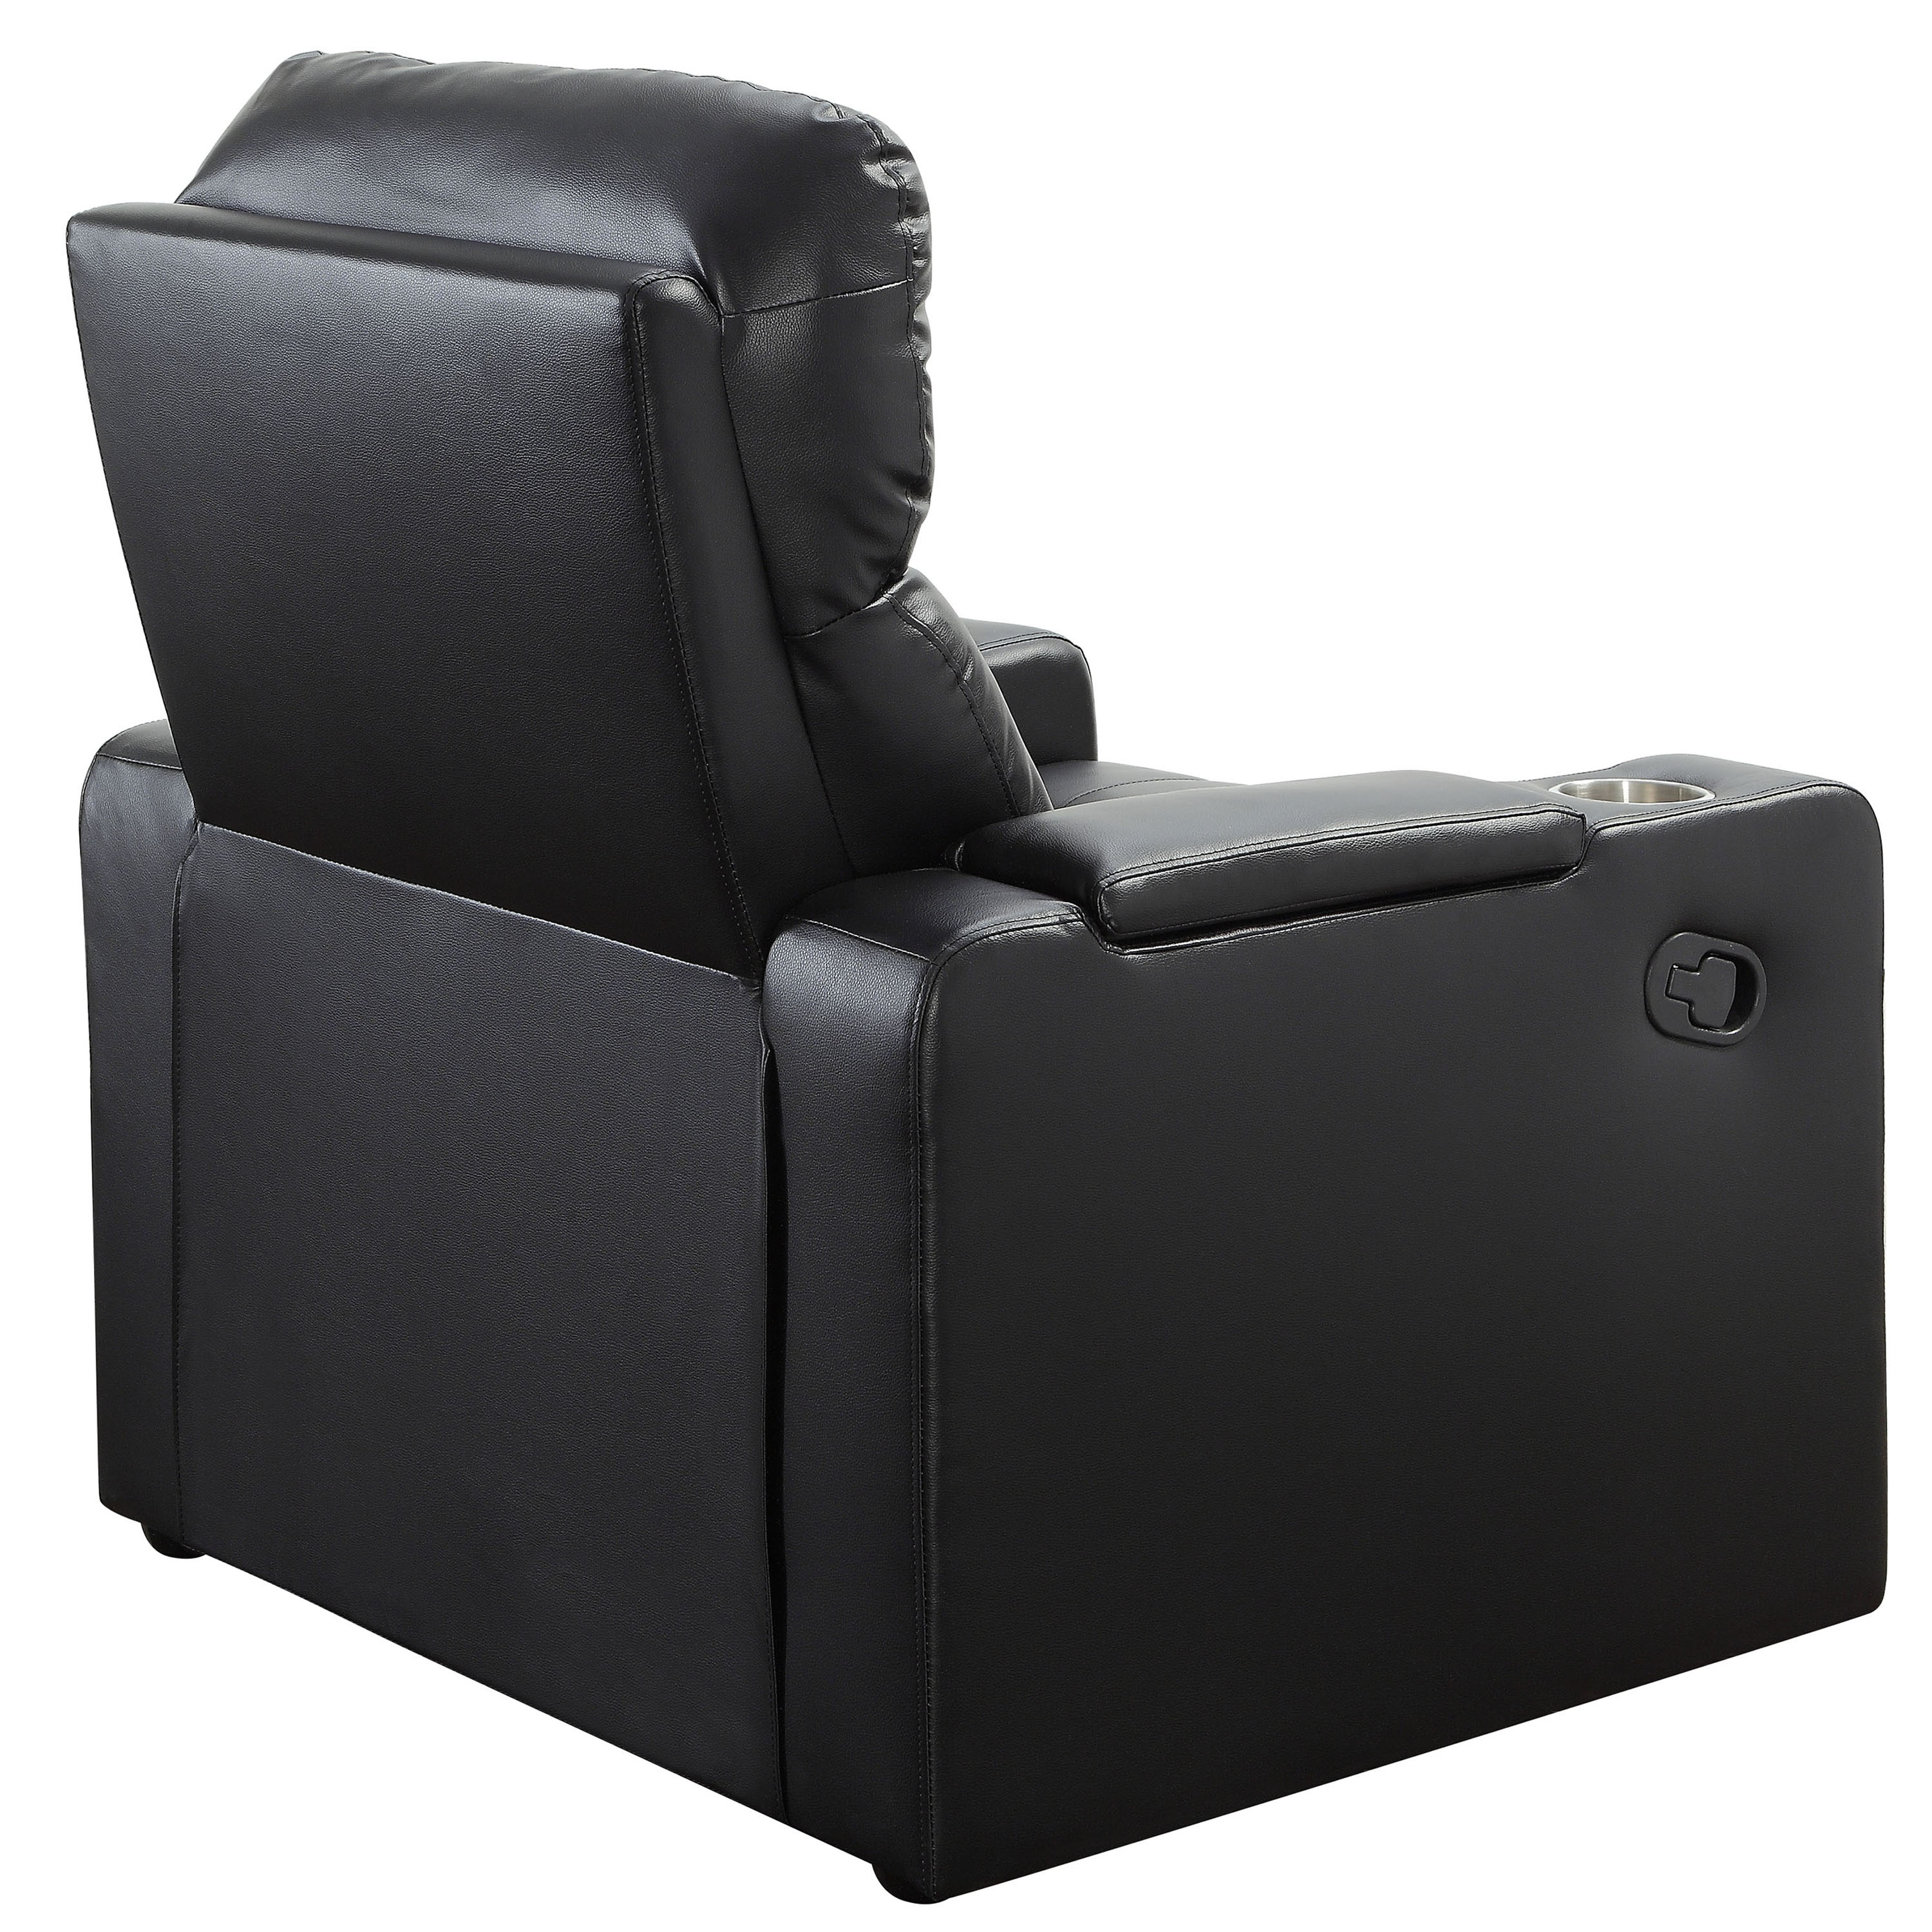 Home Theater Recliner W/ In Arm Storage Reclining Chair W/ PU Leather Black